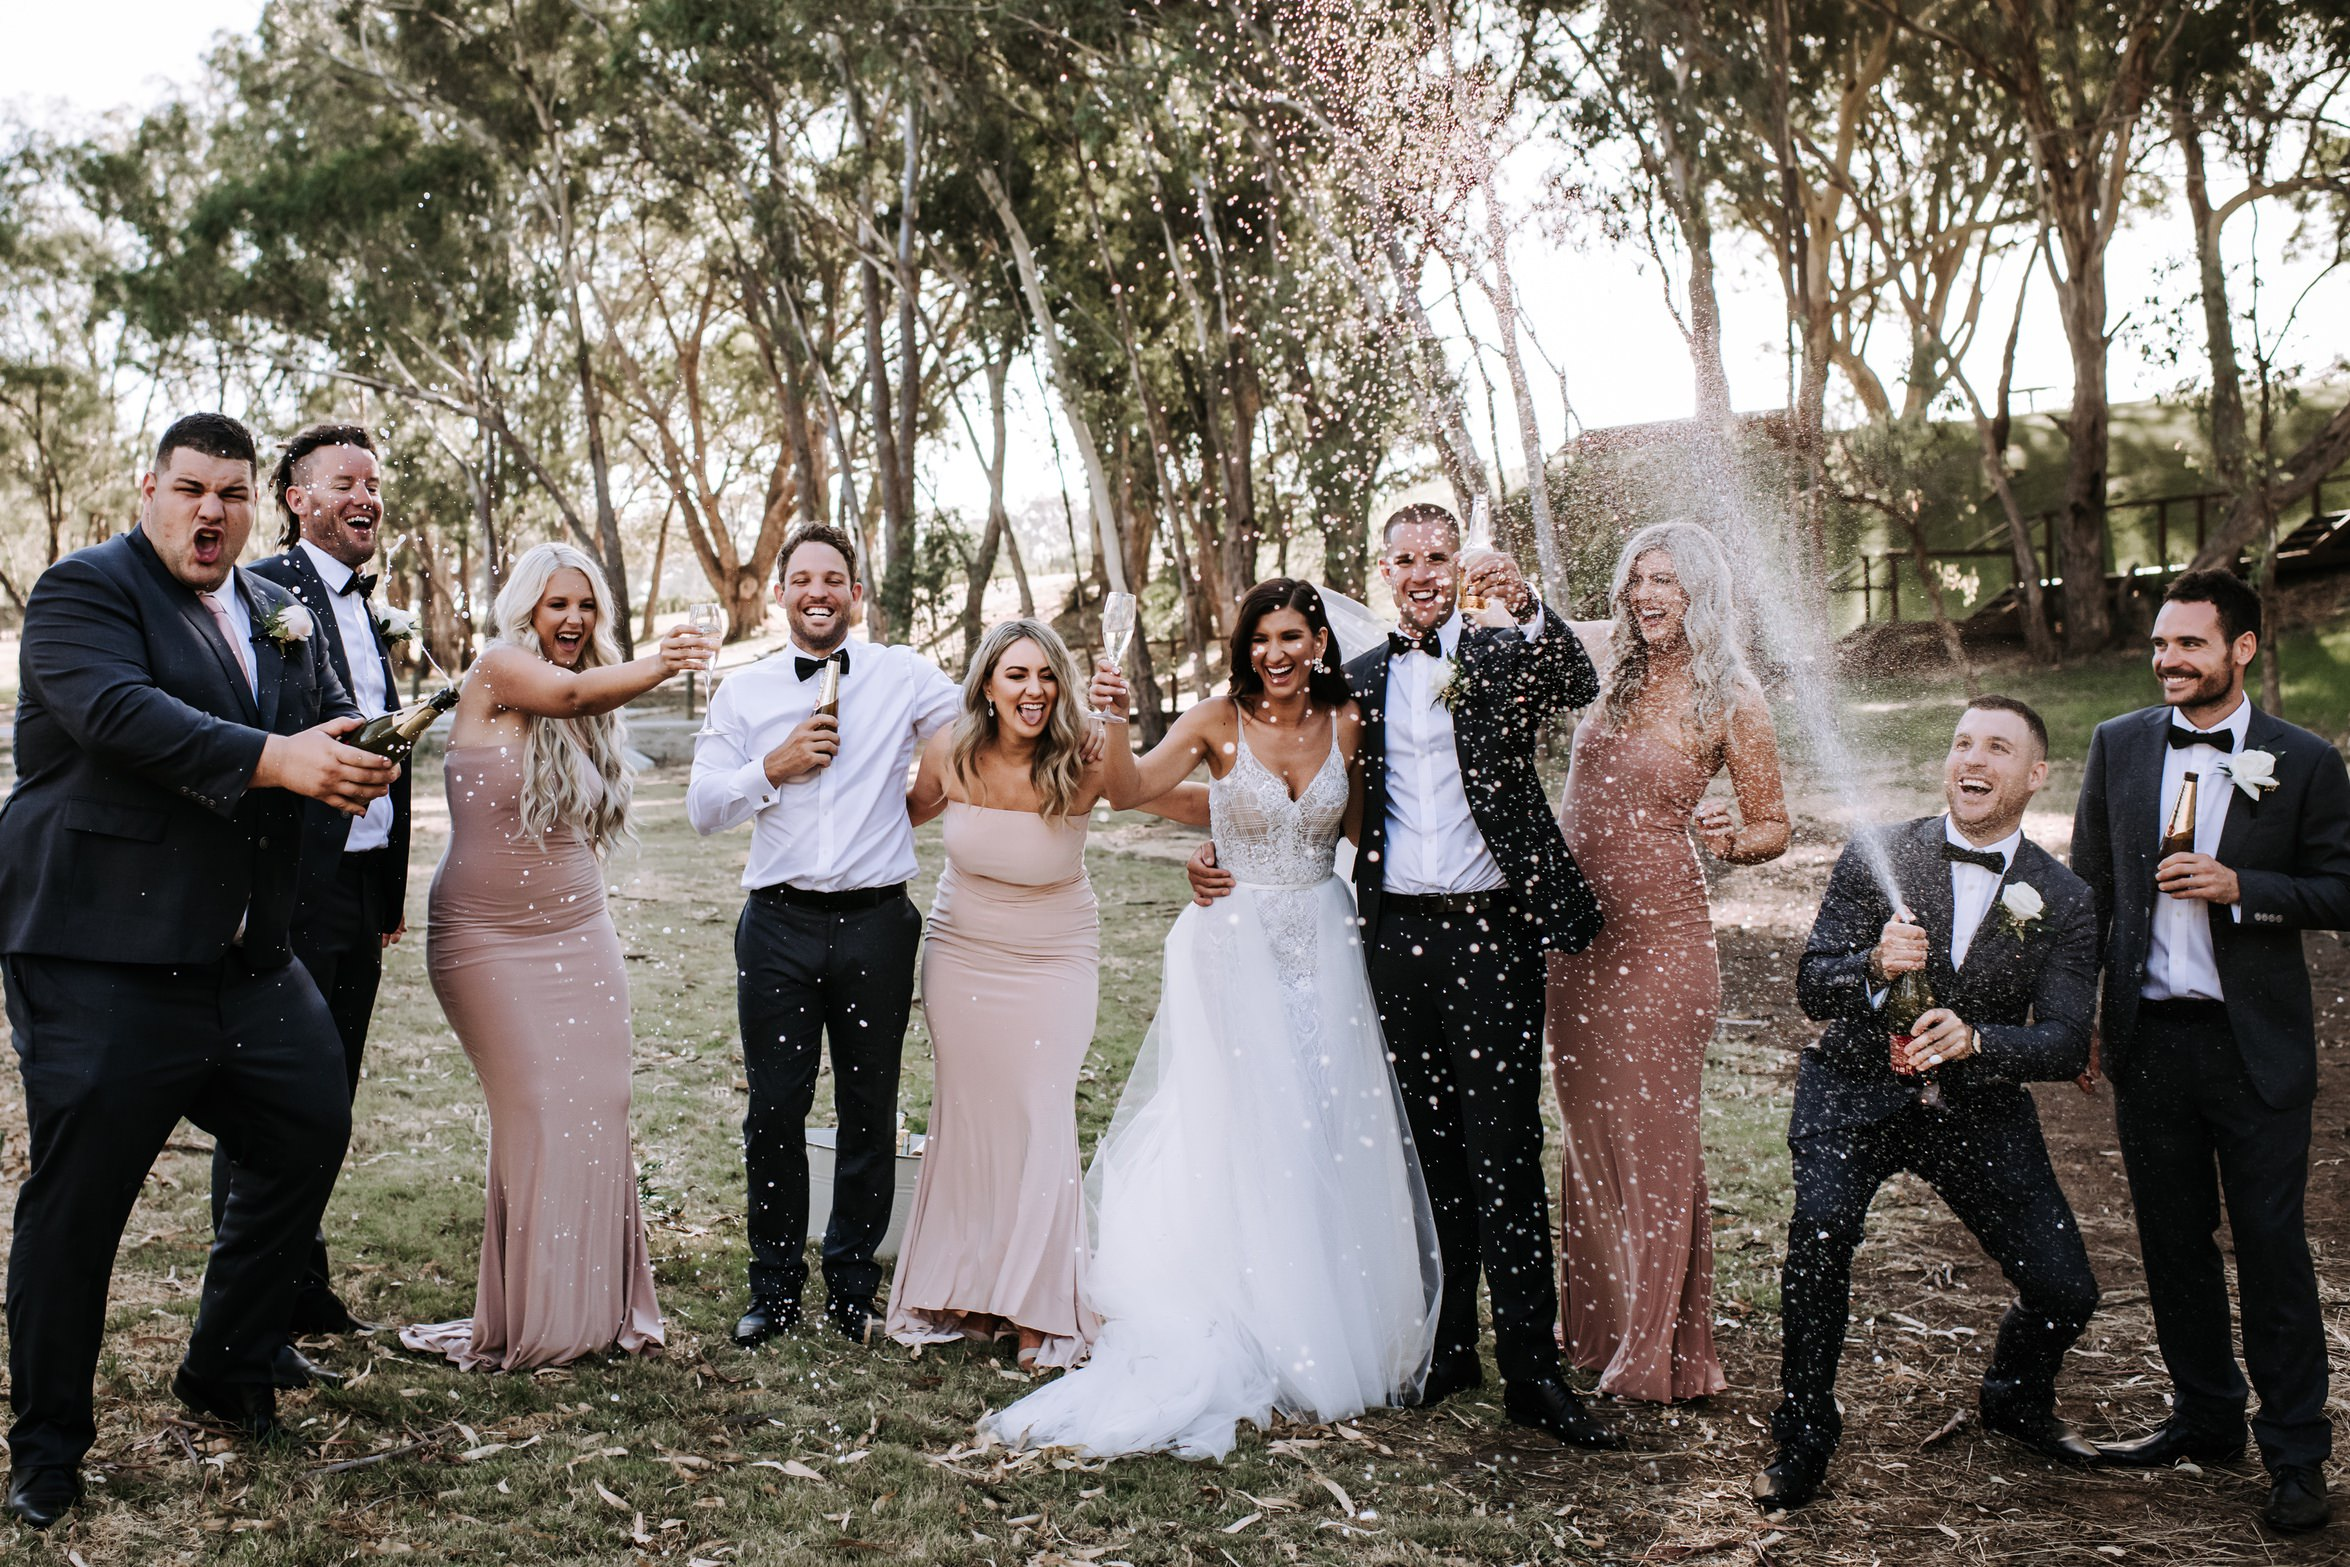 bridal party spraying champagne Mandoon Estate Perth